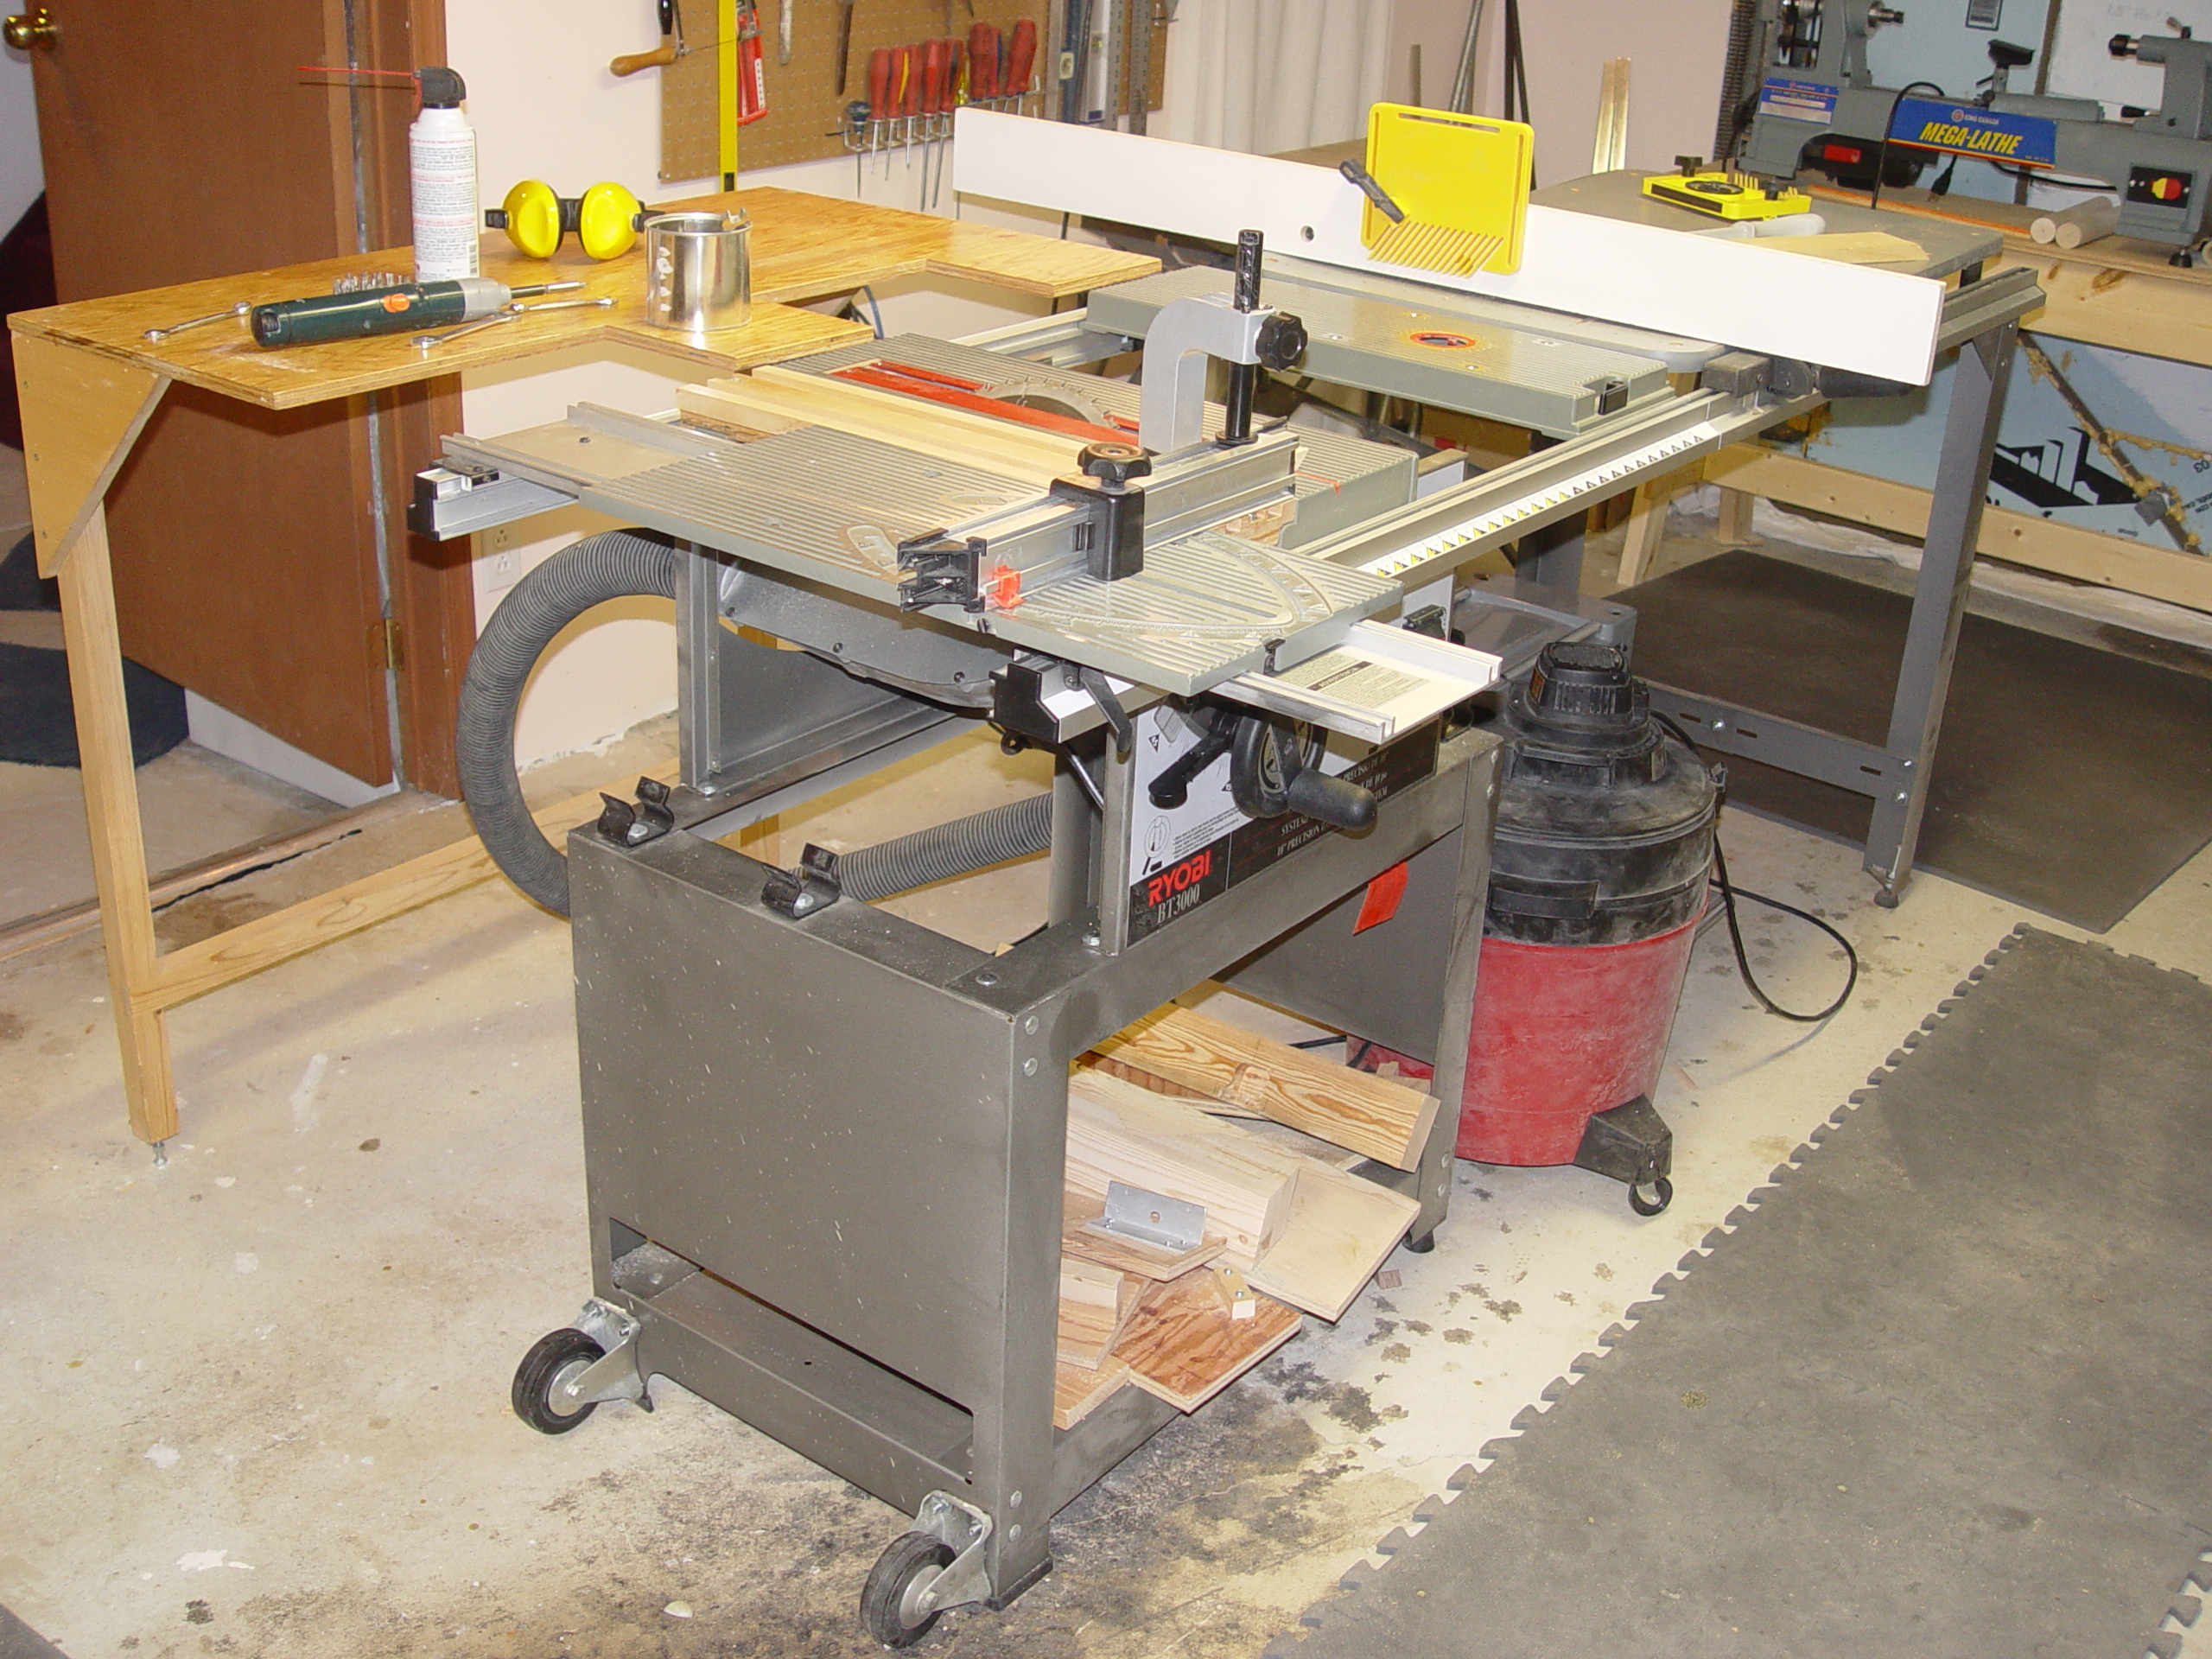 Jewel boxes of bradford products table saw the ryobi bt3000sx table saw has a keyboard keysfo Choice Image